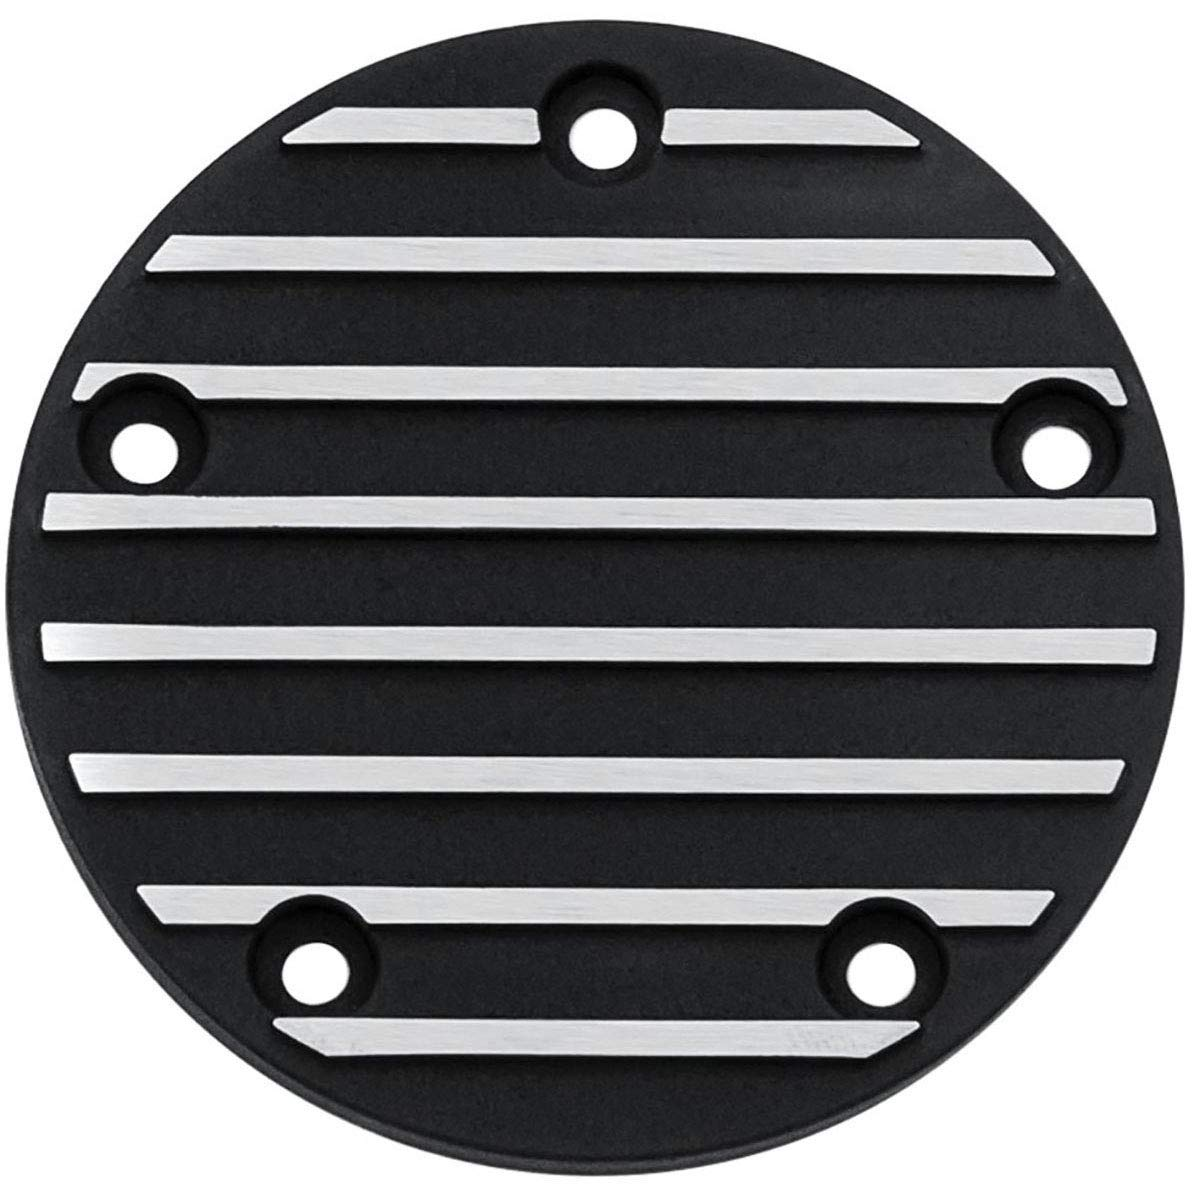 Satin Black//Machined Kuryakyn Finned Timing Engine Cover Compatible for Harley-Davidson Motorcycle Twin Cam 99-17